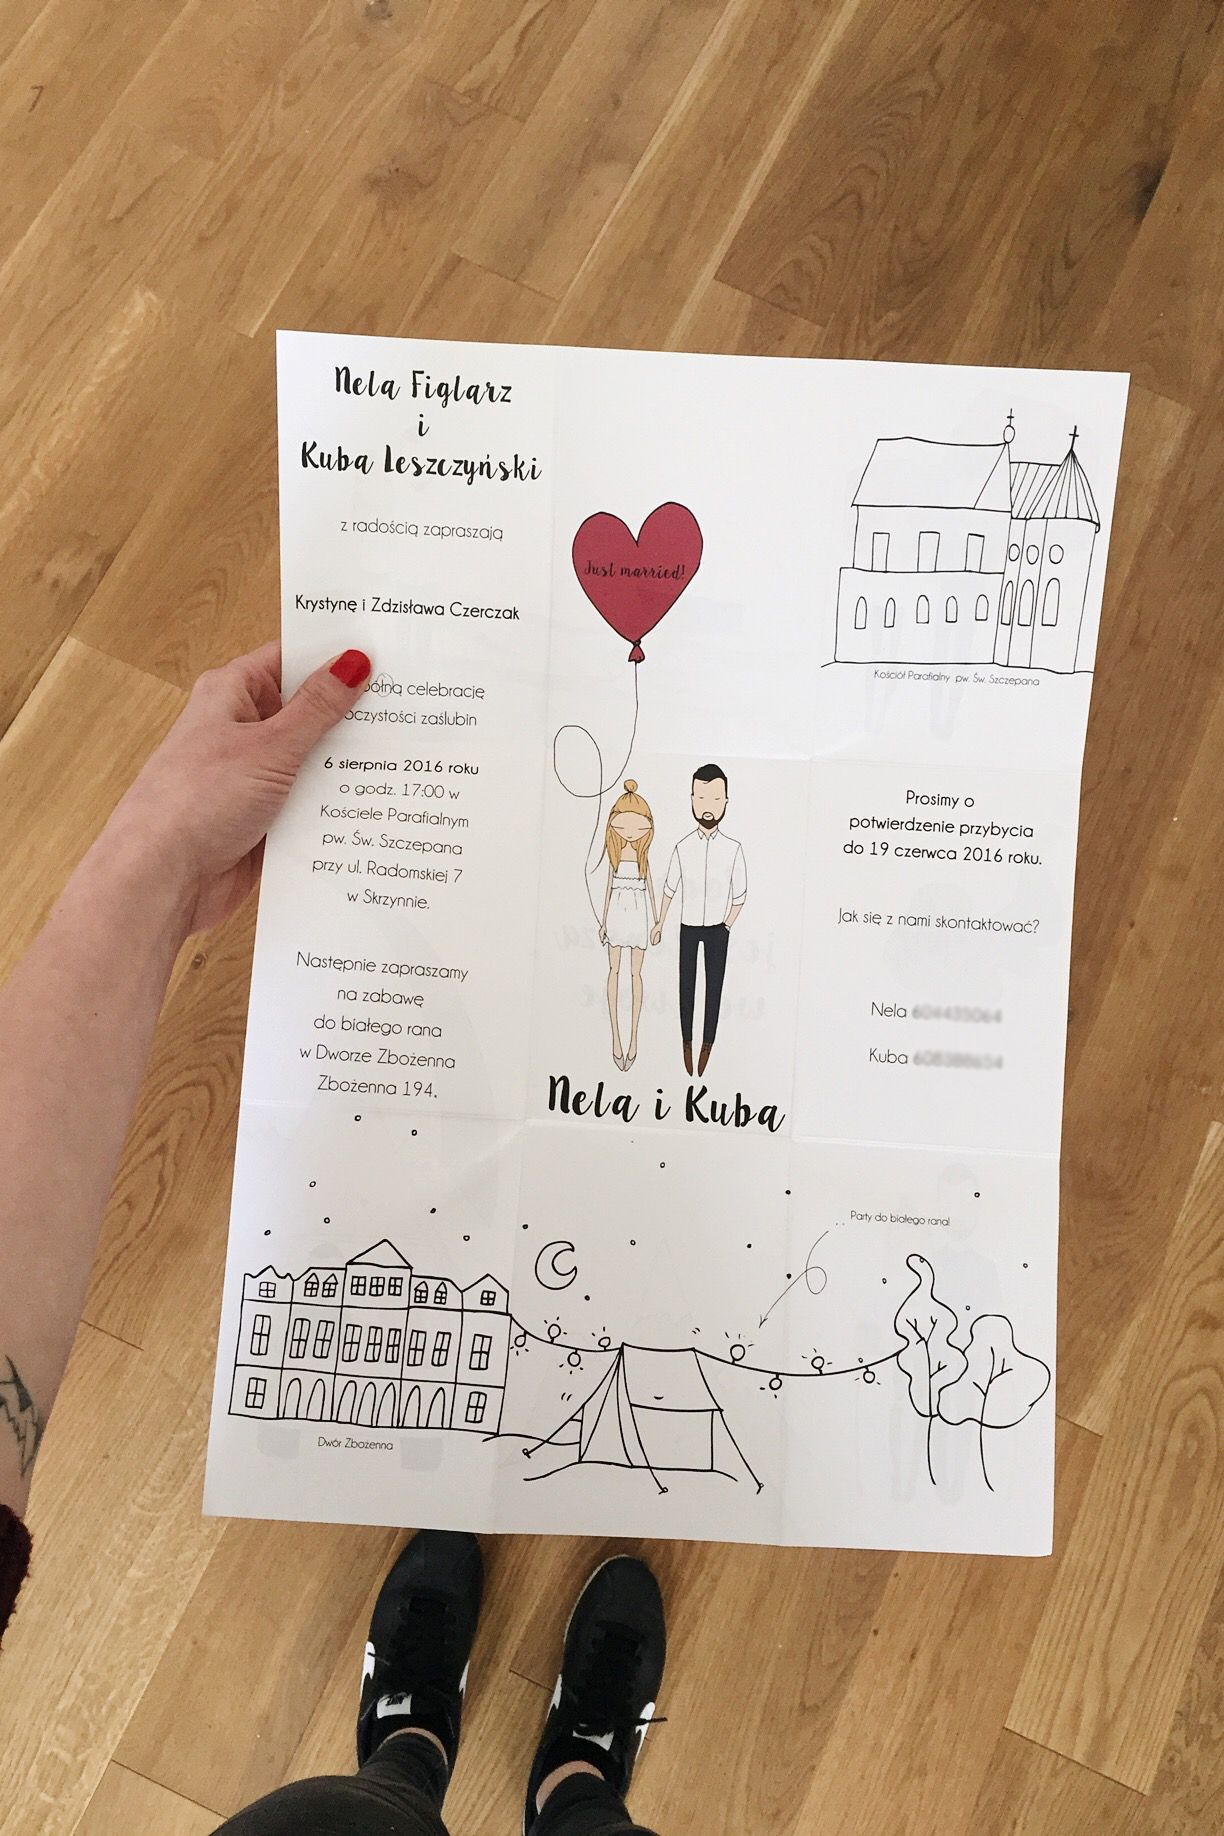 Cool Fold Out Wedding Invitations By Blanka Biernat You Could Also Do This A Quirky Wedding Invitations Interesting Wedding Invitations Fun Wedding Invitations